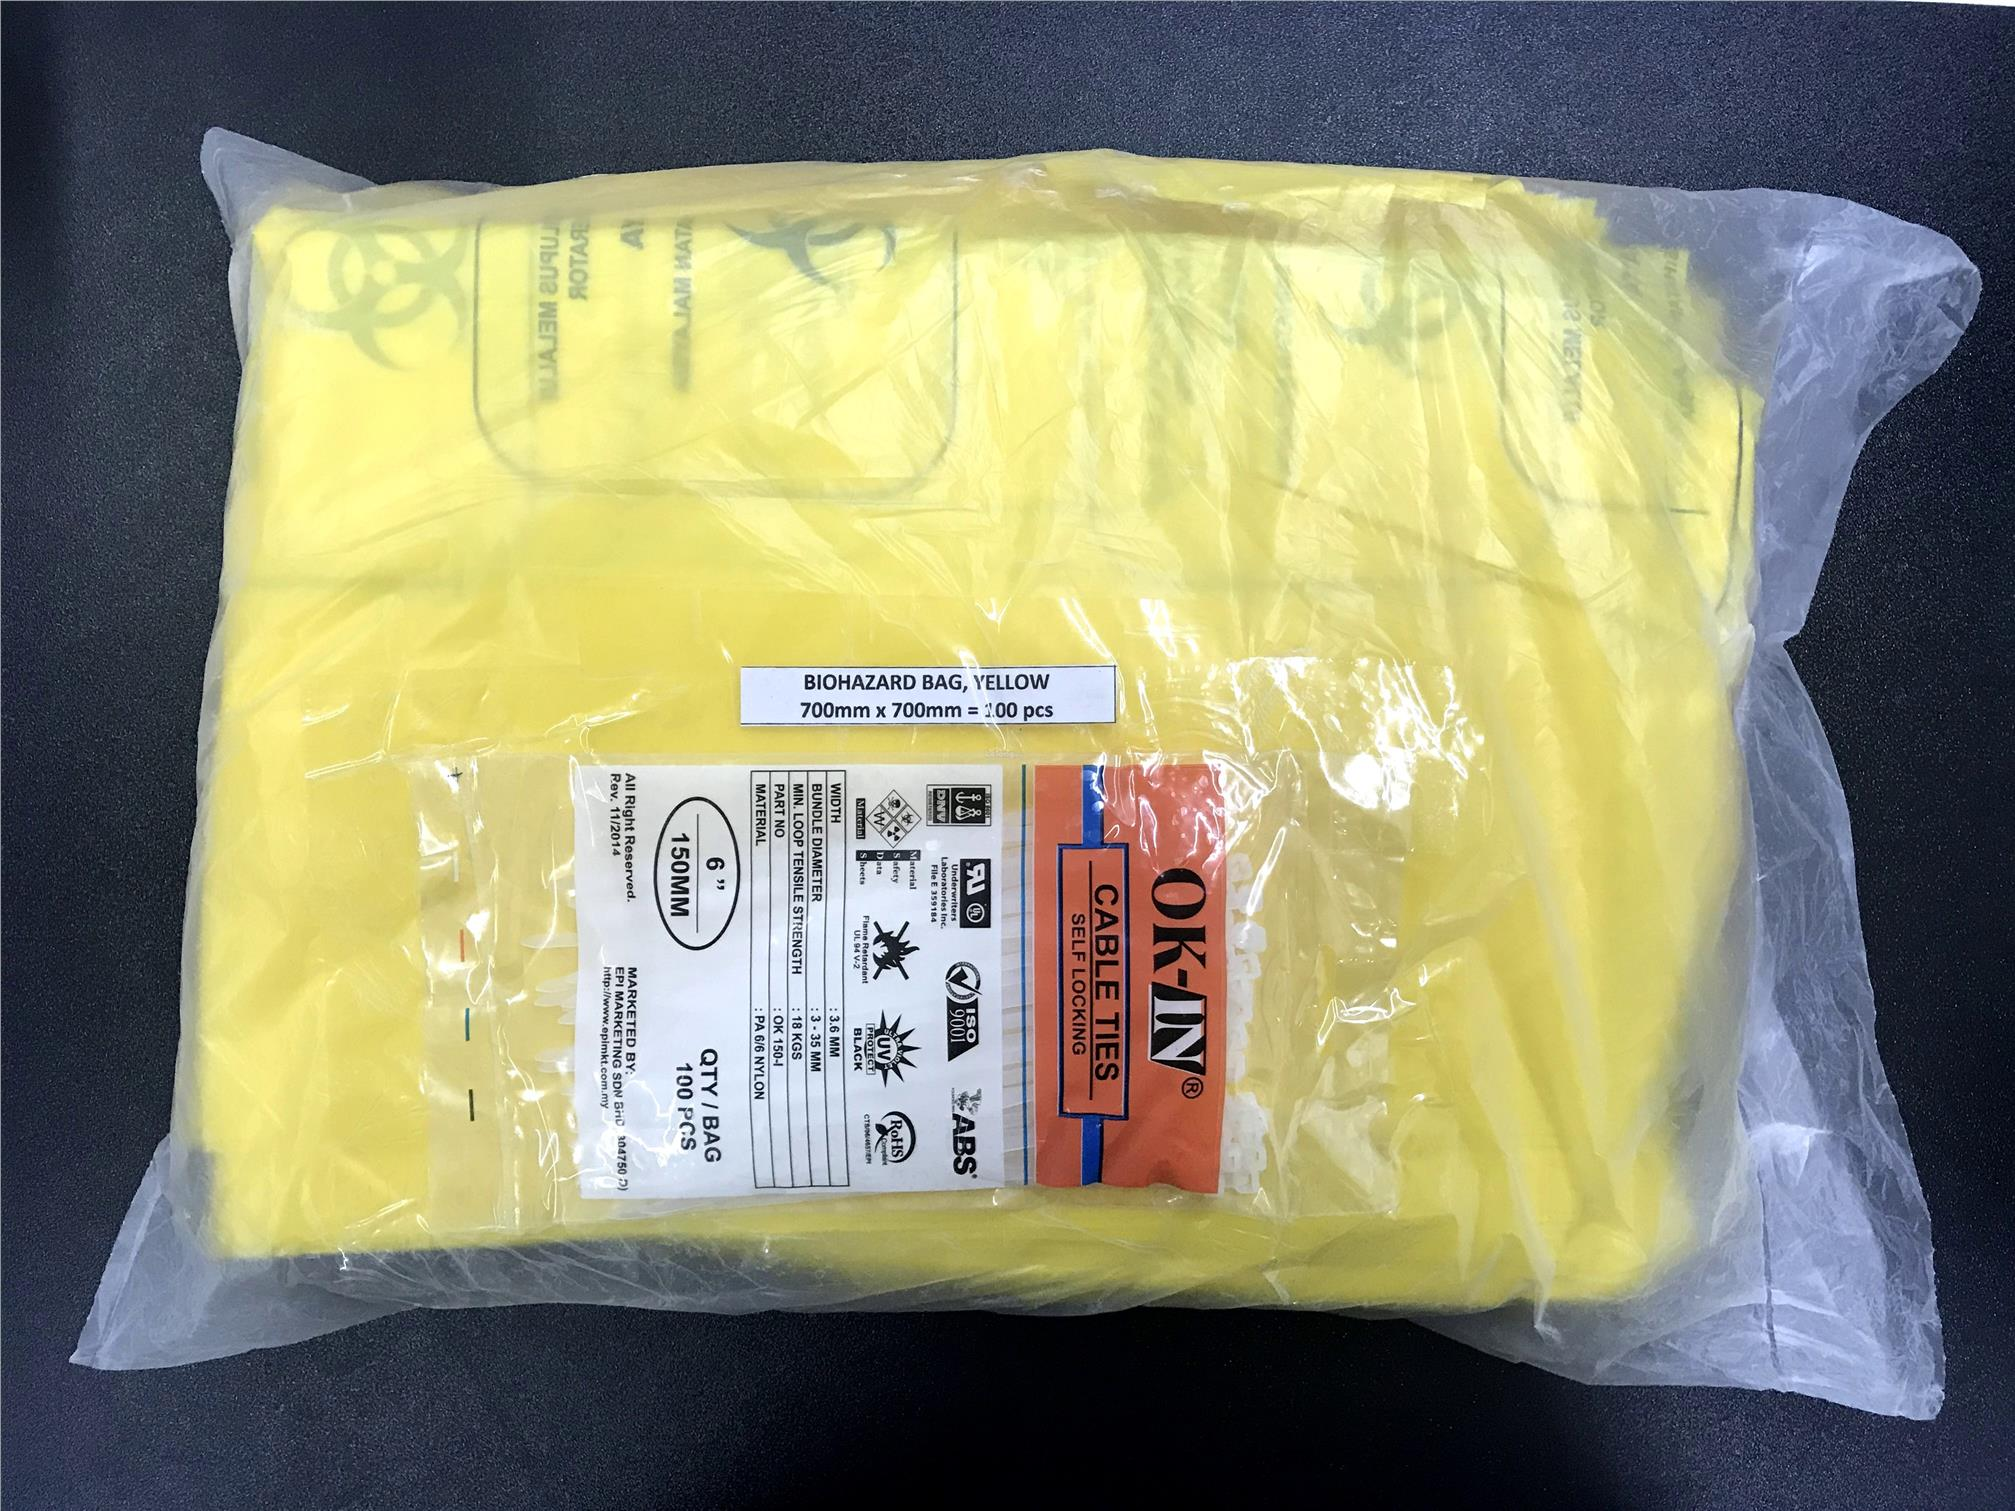 Yellow PP Biohazard Disposable Bags (700mm x 700mm)